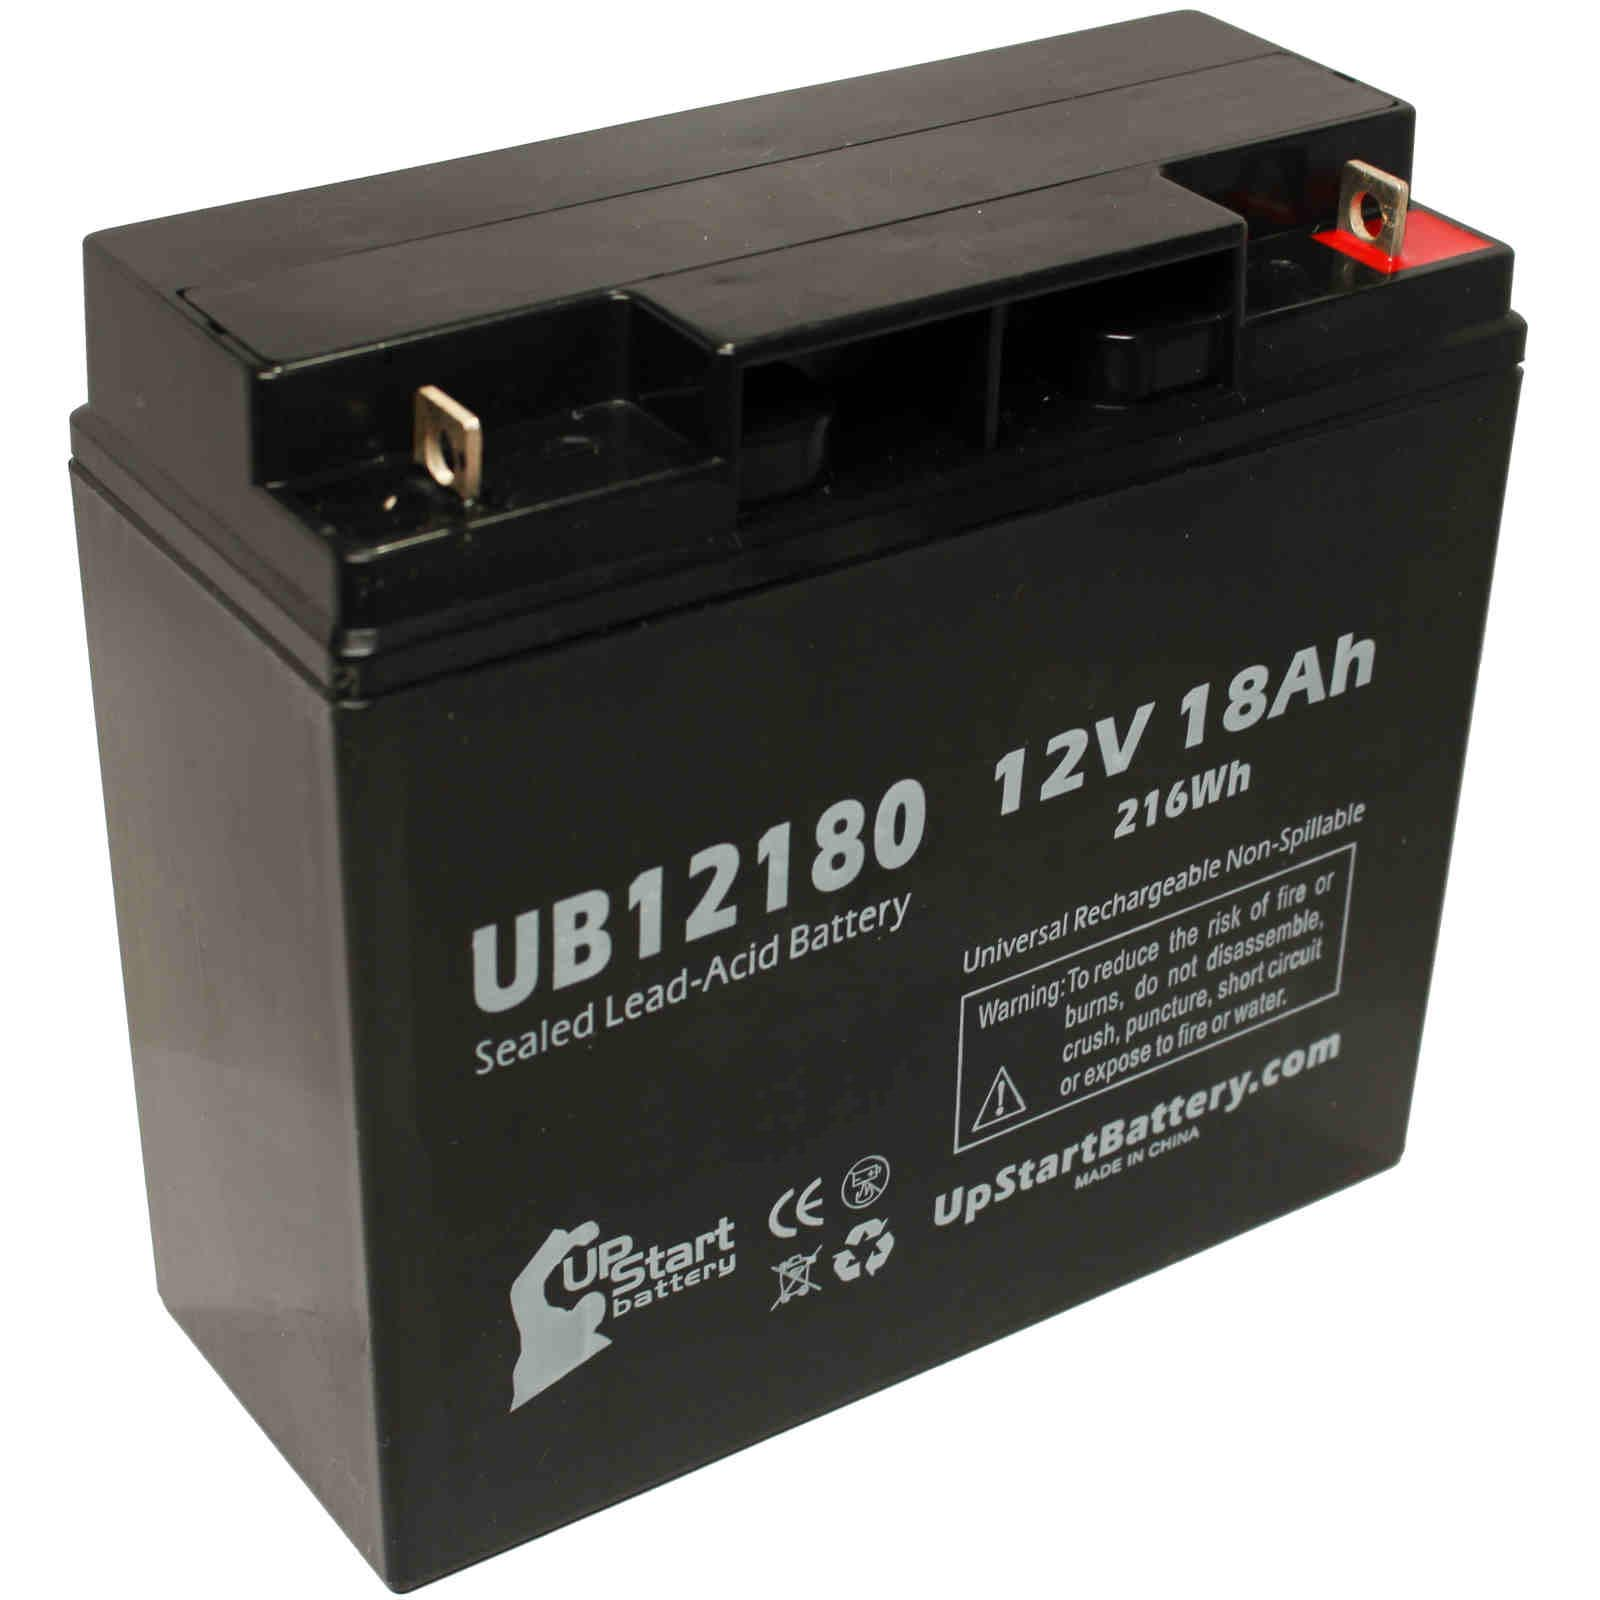 UpStart Battery SEARS CRAFTSMAN DIEHARD PORTABLE POWER 1150 Battery - Replacement UB12180 Universal SLA Battery (12V, 18Ah, T4 Terminal) at Sears.com